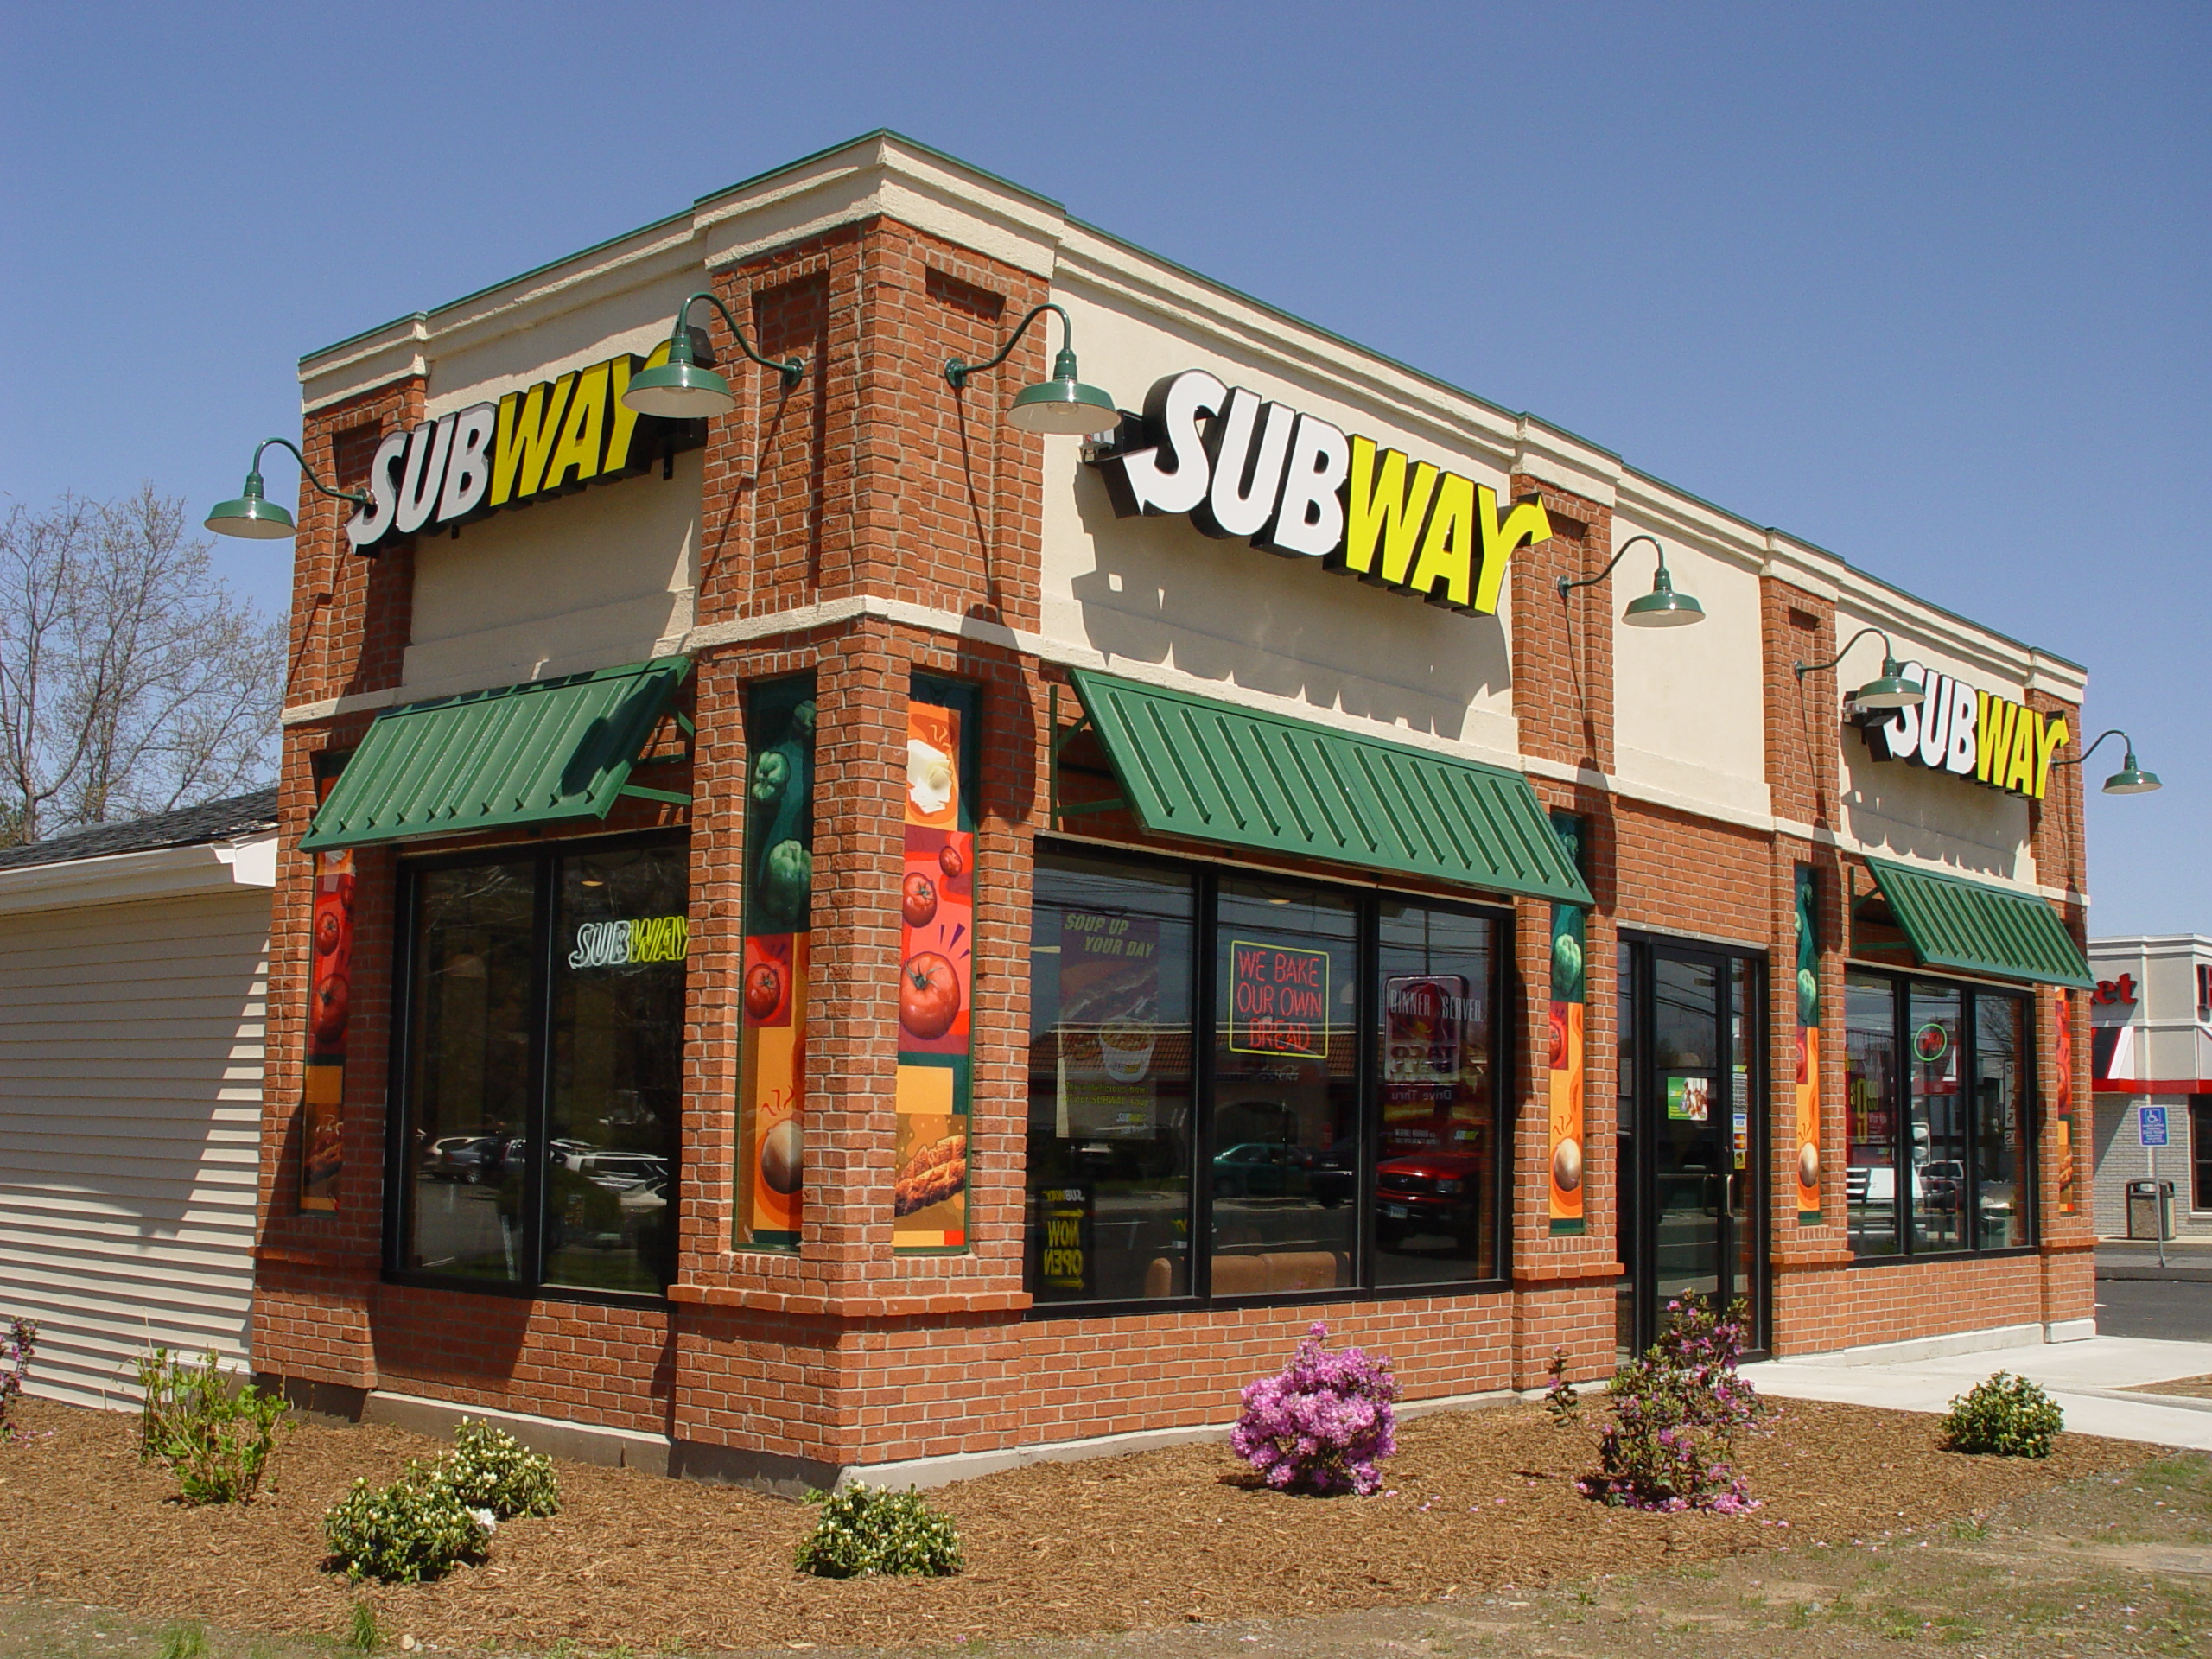 Subway, Mendenhall MS